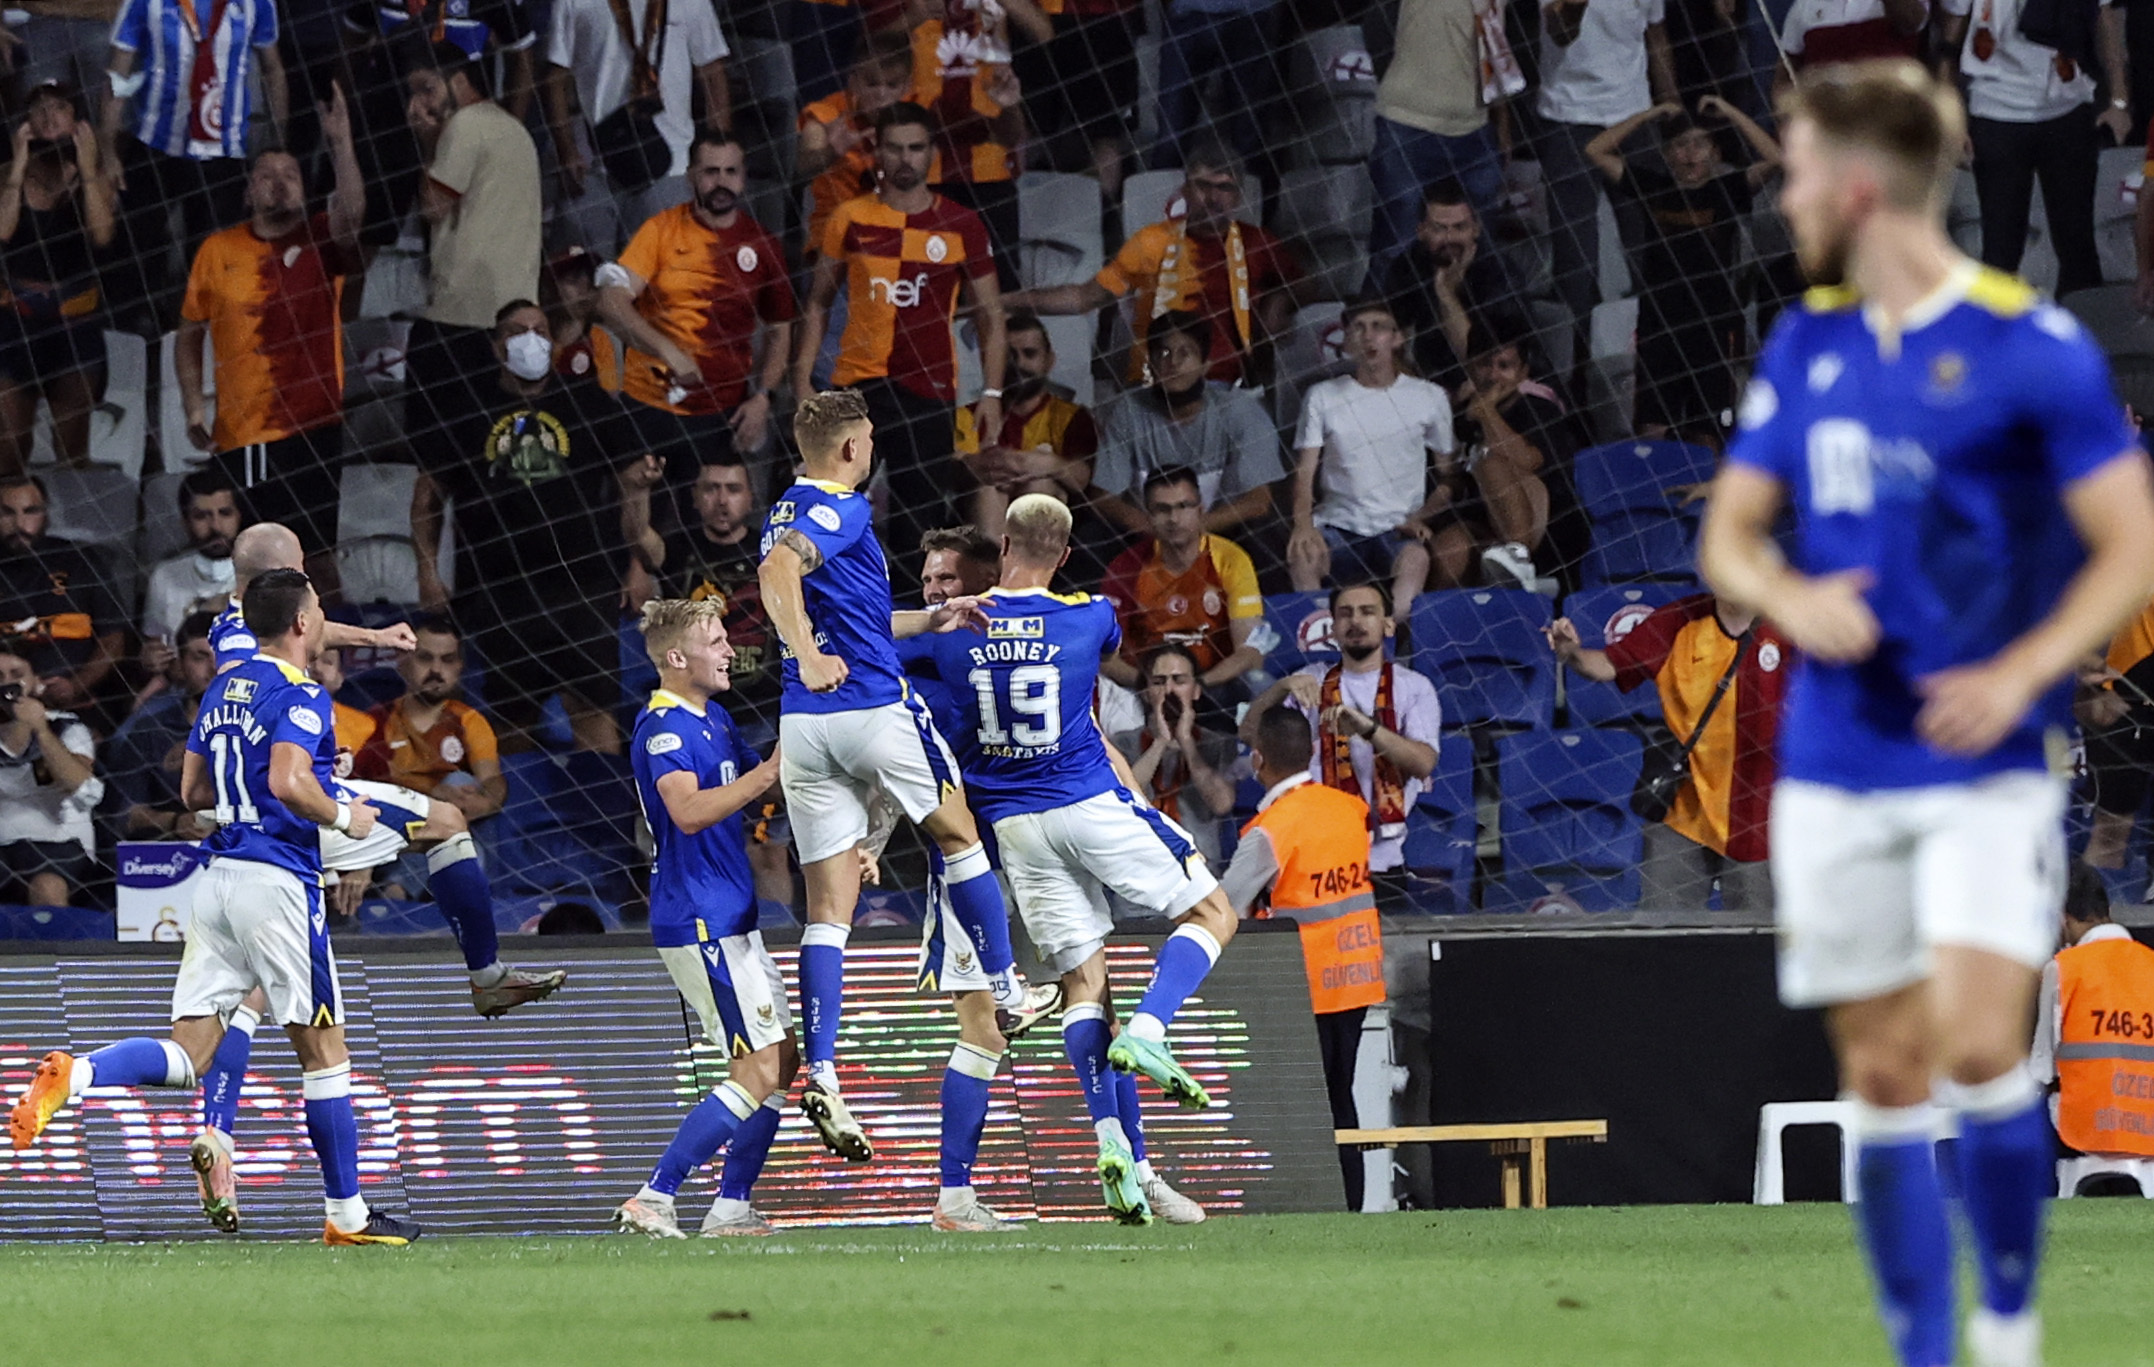 Galatasaray 1 St Johnstone 1: Callum Davidson's men continue to defy the odds with stunning display in Turkey